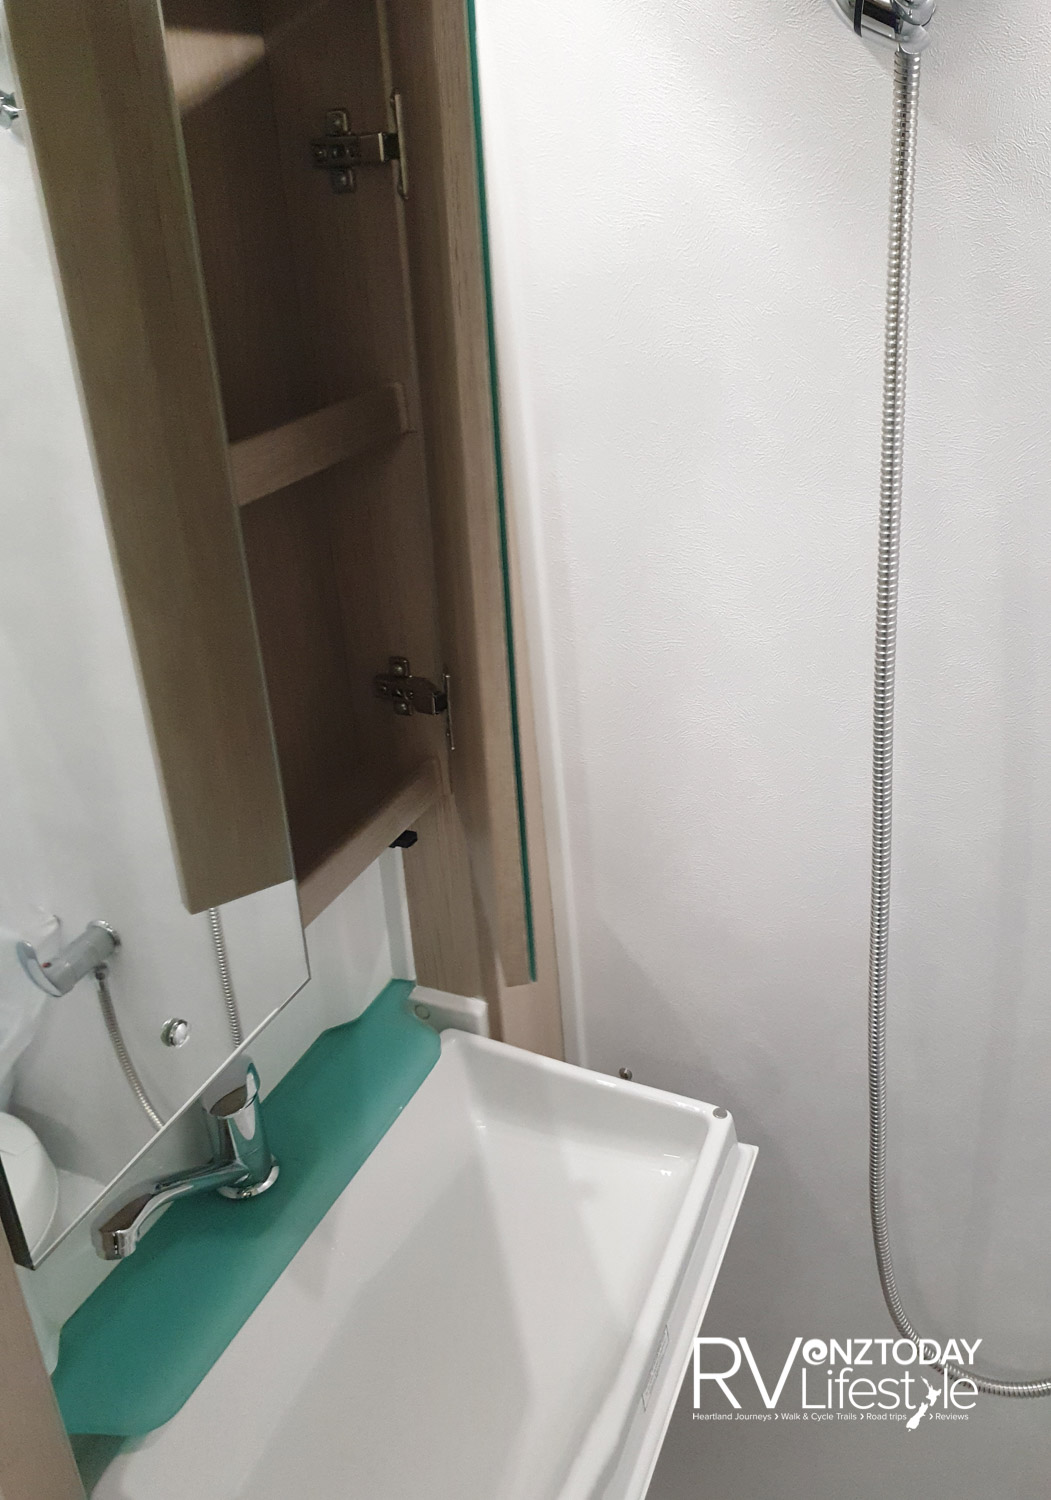 The bathroom. The door opens to a pedestal 12v electric flush cassette toilet with shower curtain, a nifty sink unit folds back into the wall for storage. Storage above and below.